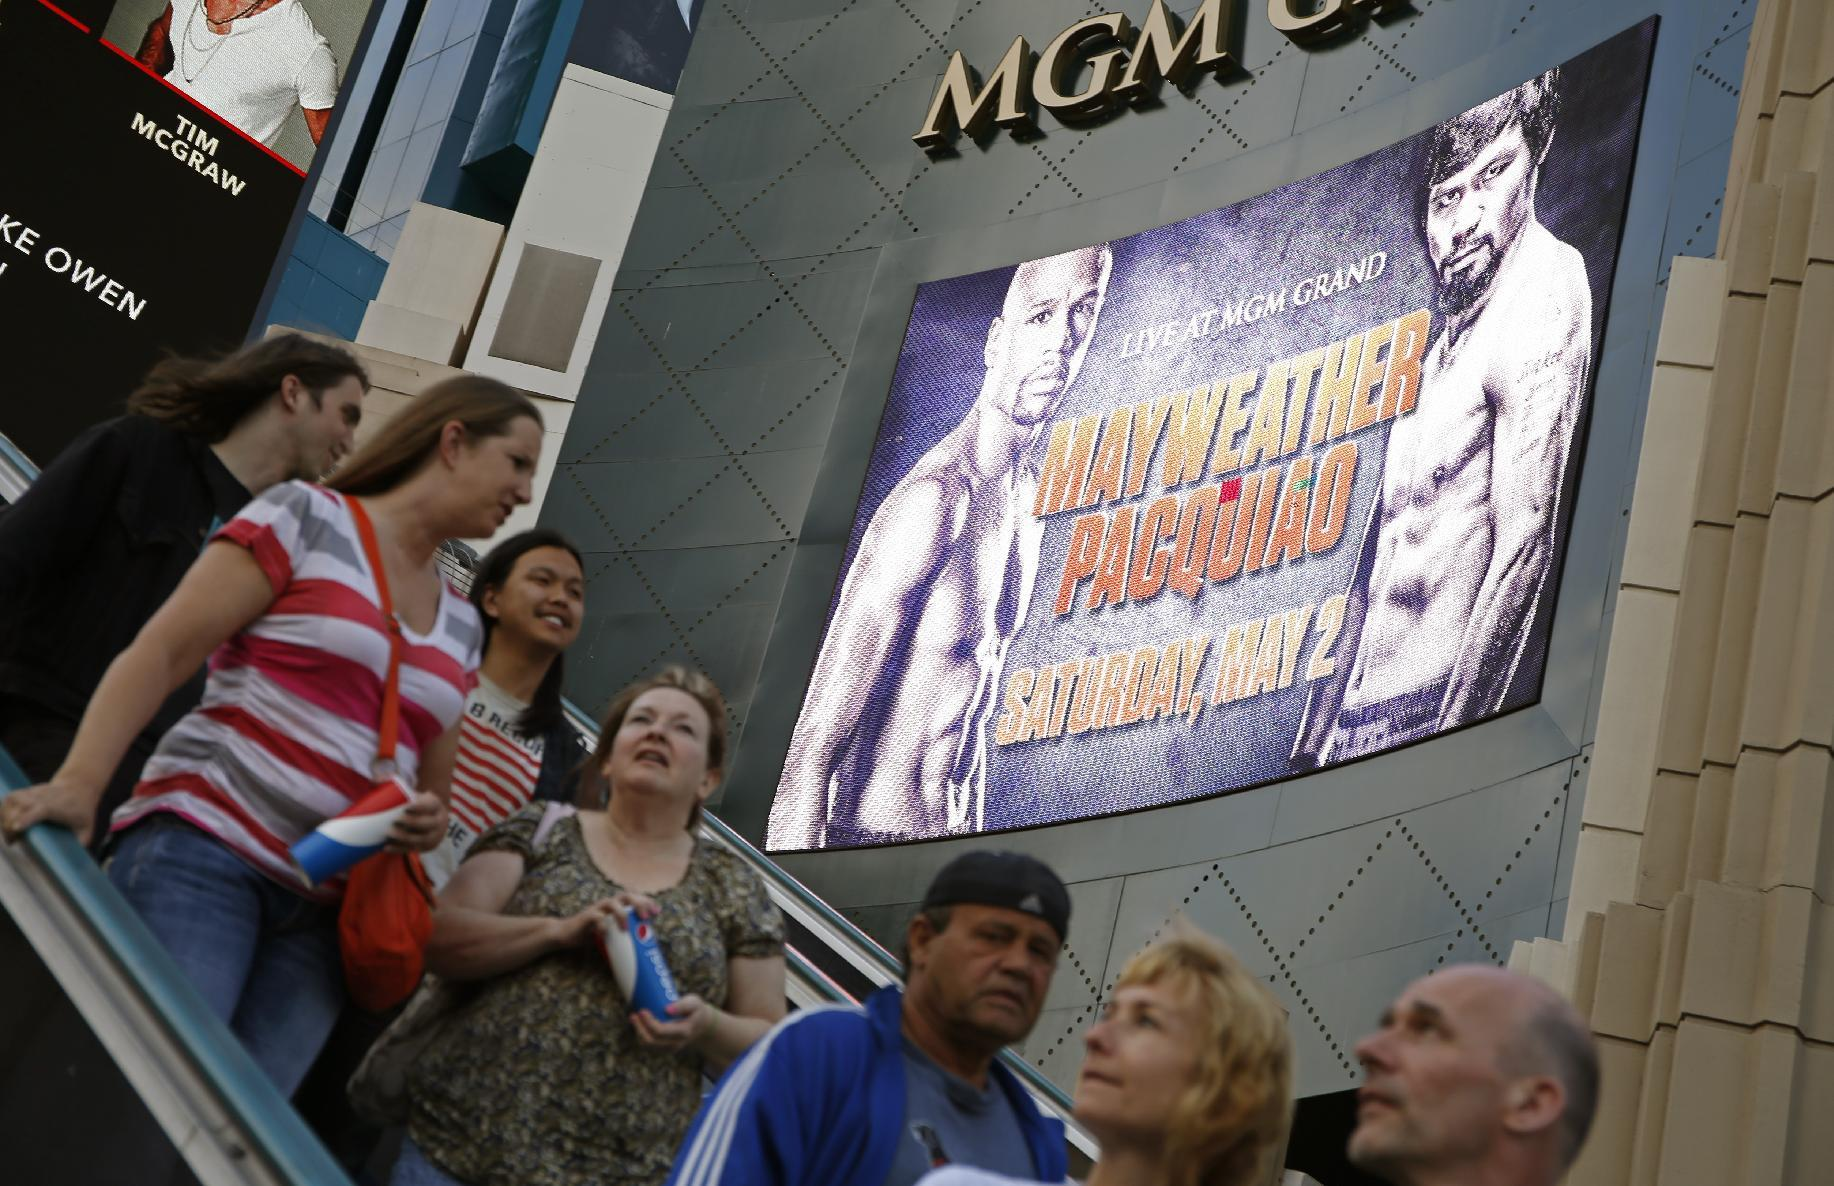 Las Vegas bullish on Mayweather-Pacquiao megafight